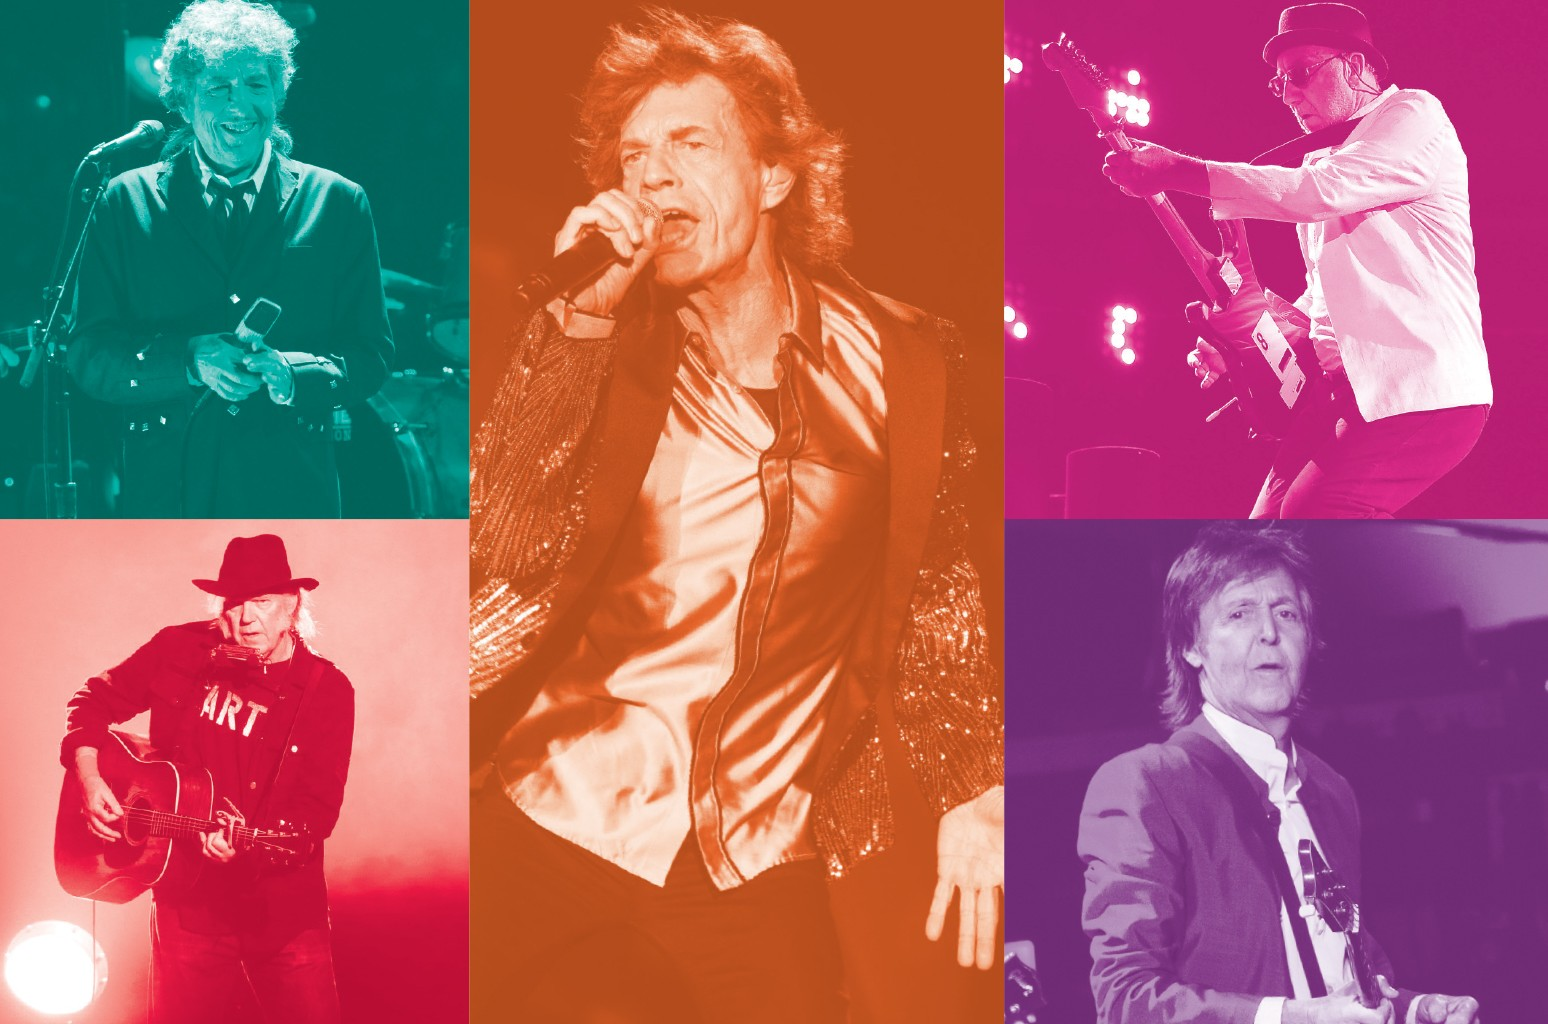 The three-night classic-rock extravaganza features an unprecedented bill. Clockwise from top left: Dylan, The Rolling Stones, The Who, McCartney and Young.